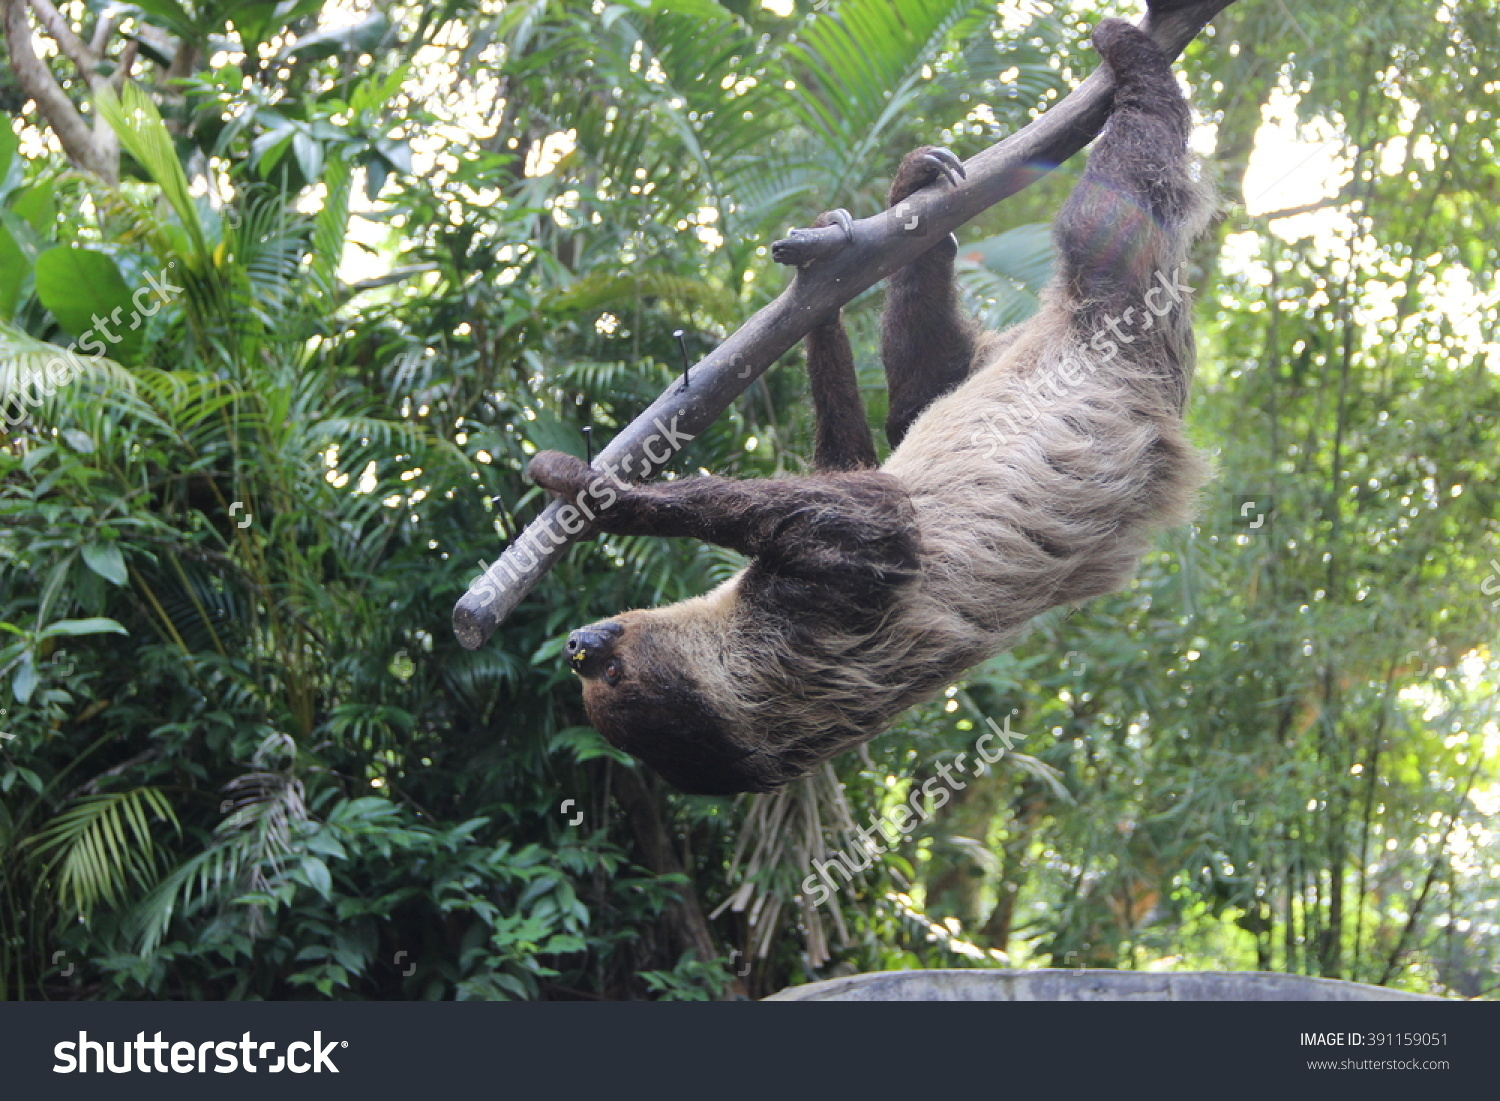 Threetoed Sloth Bradypodidae Stock Photo 391159051.